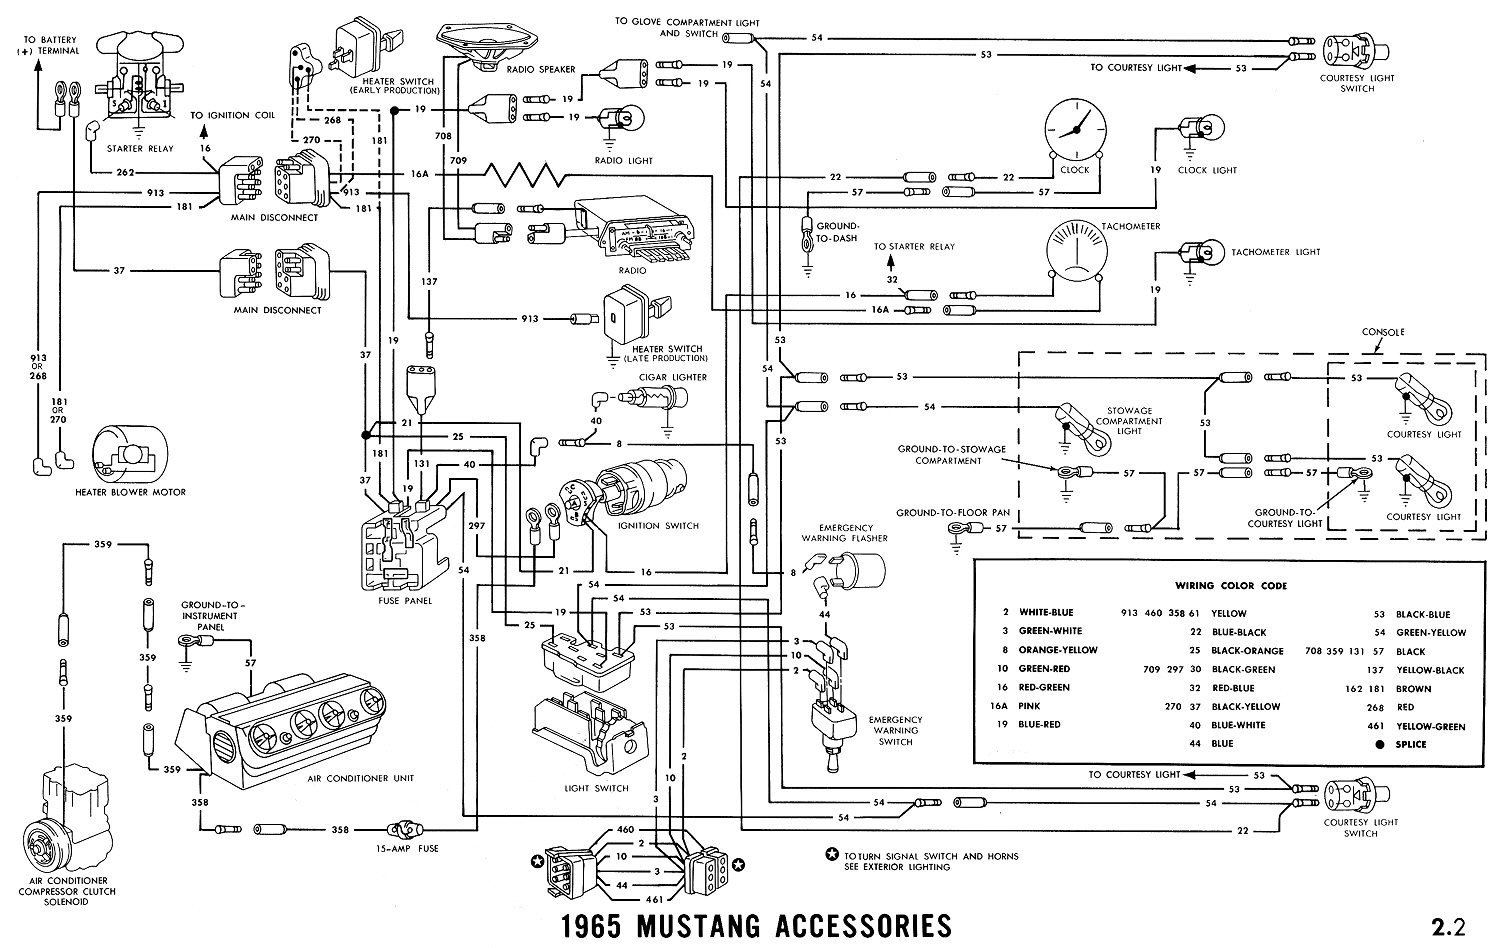 1965 Mustang Wiring Diagrams Average Joe Restoration Basic Vehicle Diagram Air Conditioner